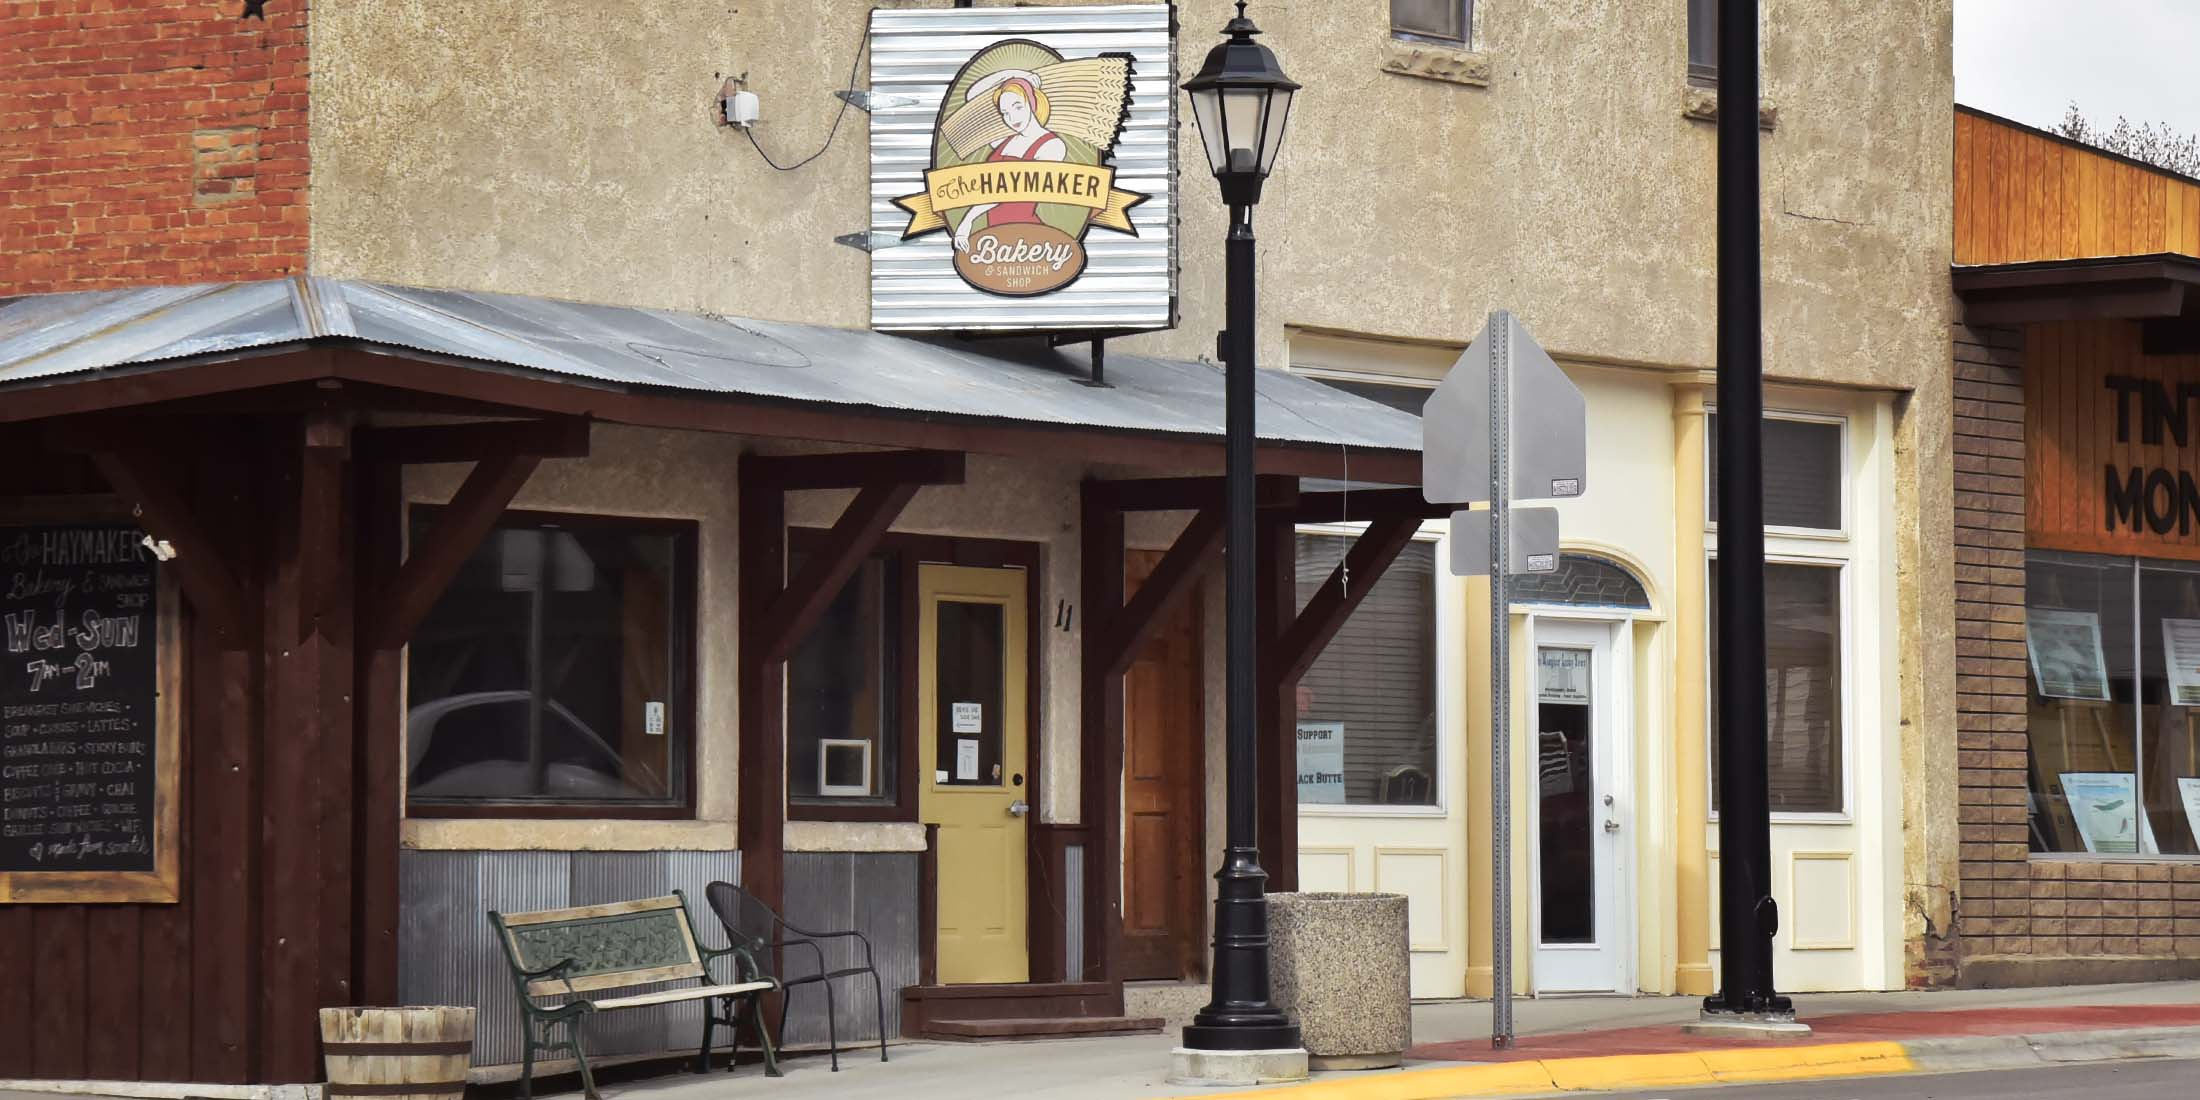 Located in downtown White Sulphur Springs, Montana on Highway 89 in the Little Belt Mountain Range located in Meagher County.